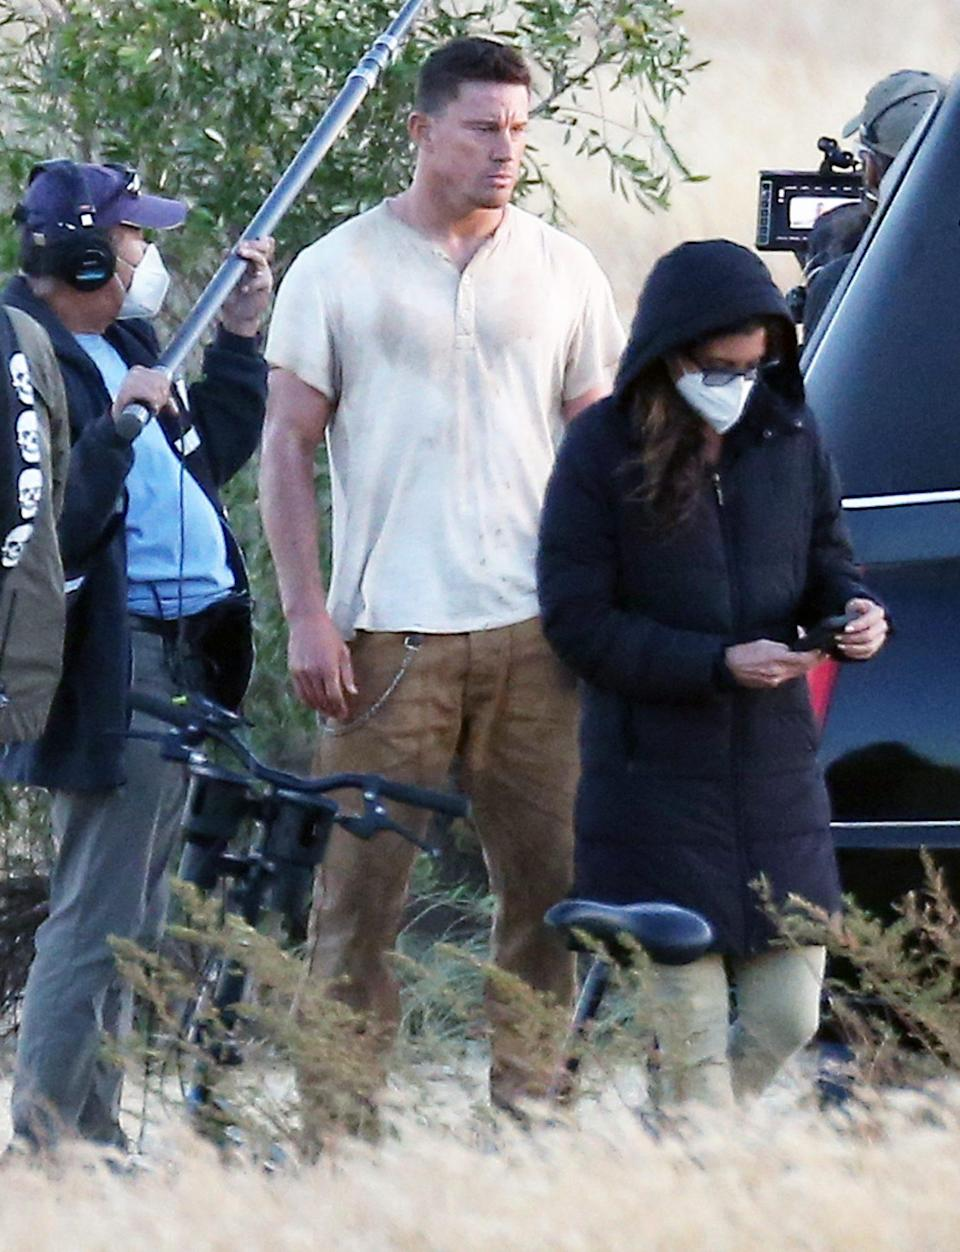 <p>Channing Tatum is spotted filming a scene for his directorial debut, <i>Dog</i>, on Friday in L.A. </p>